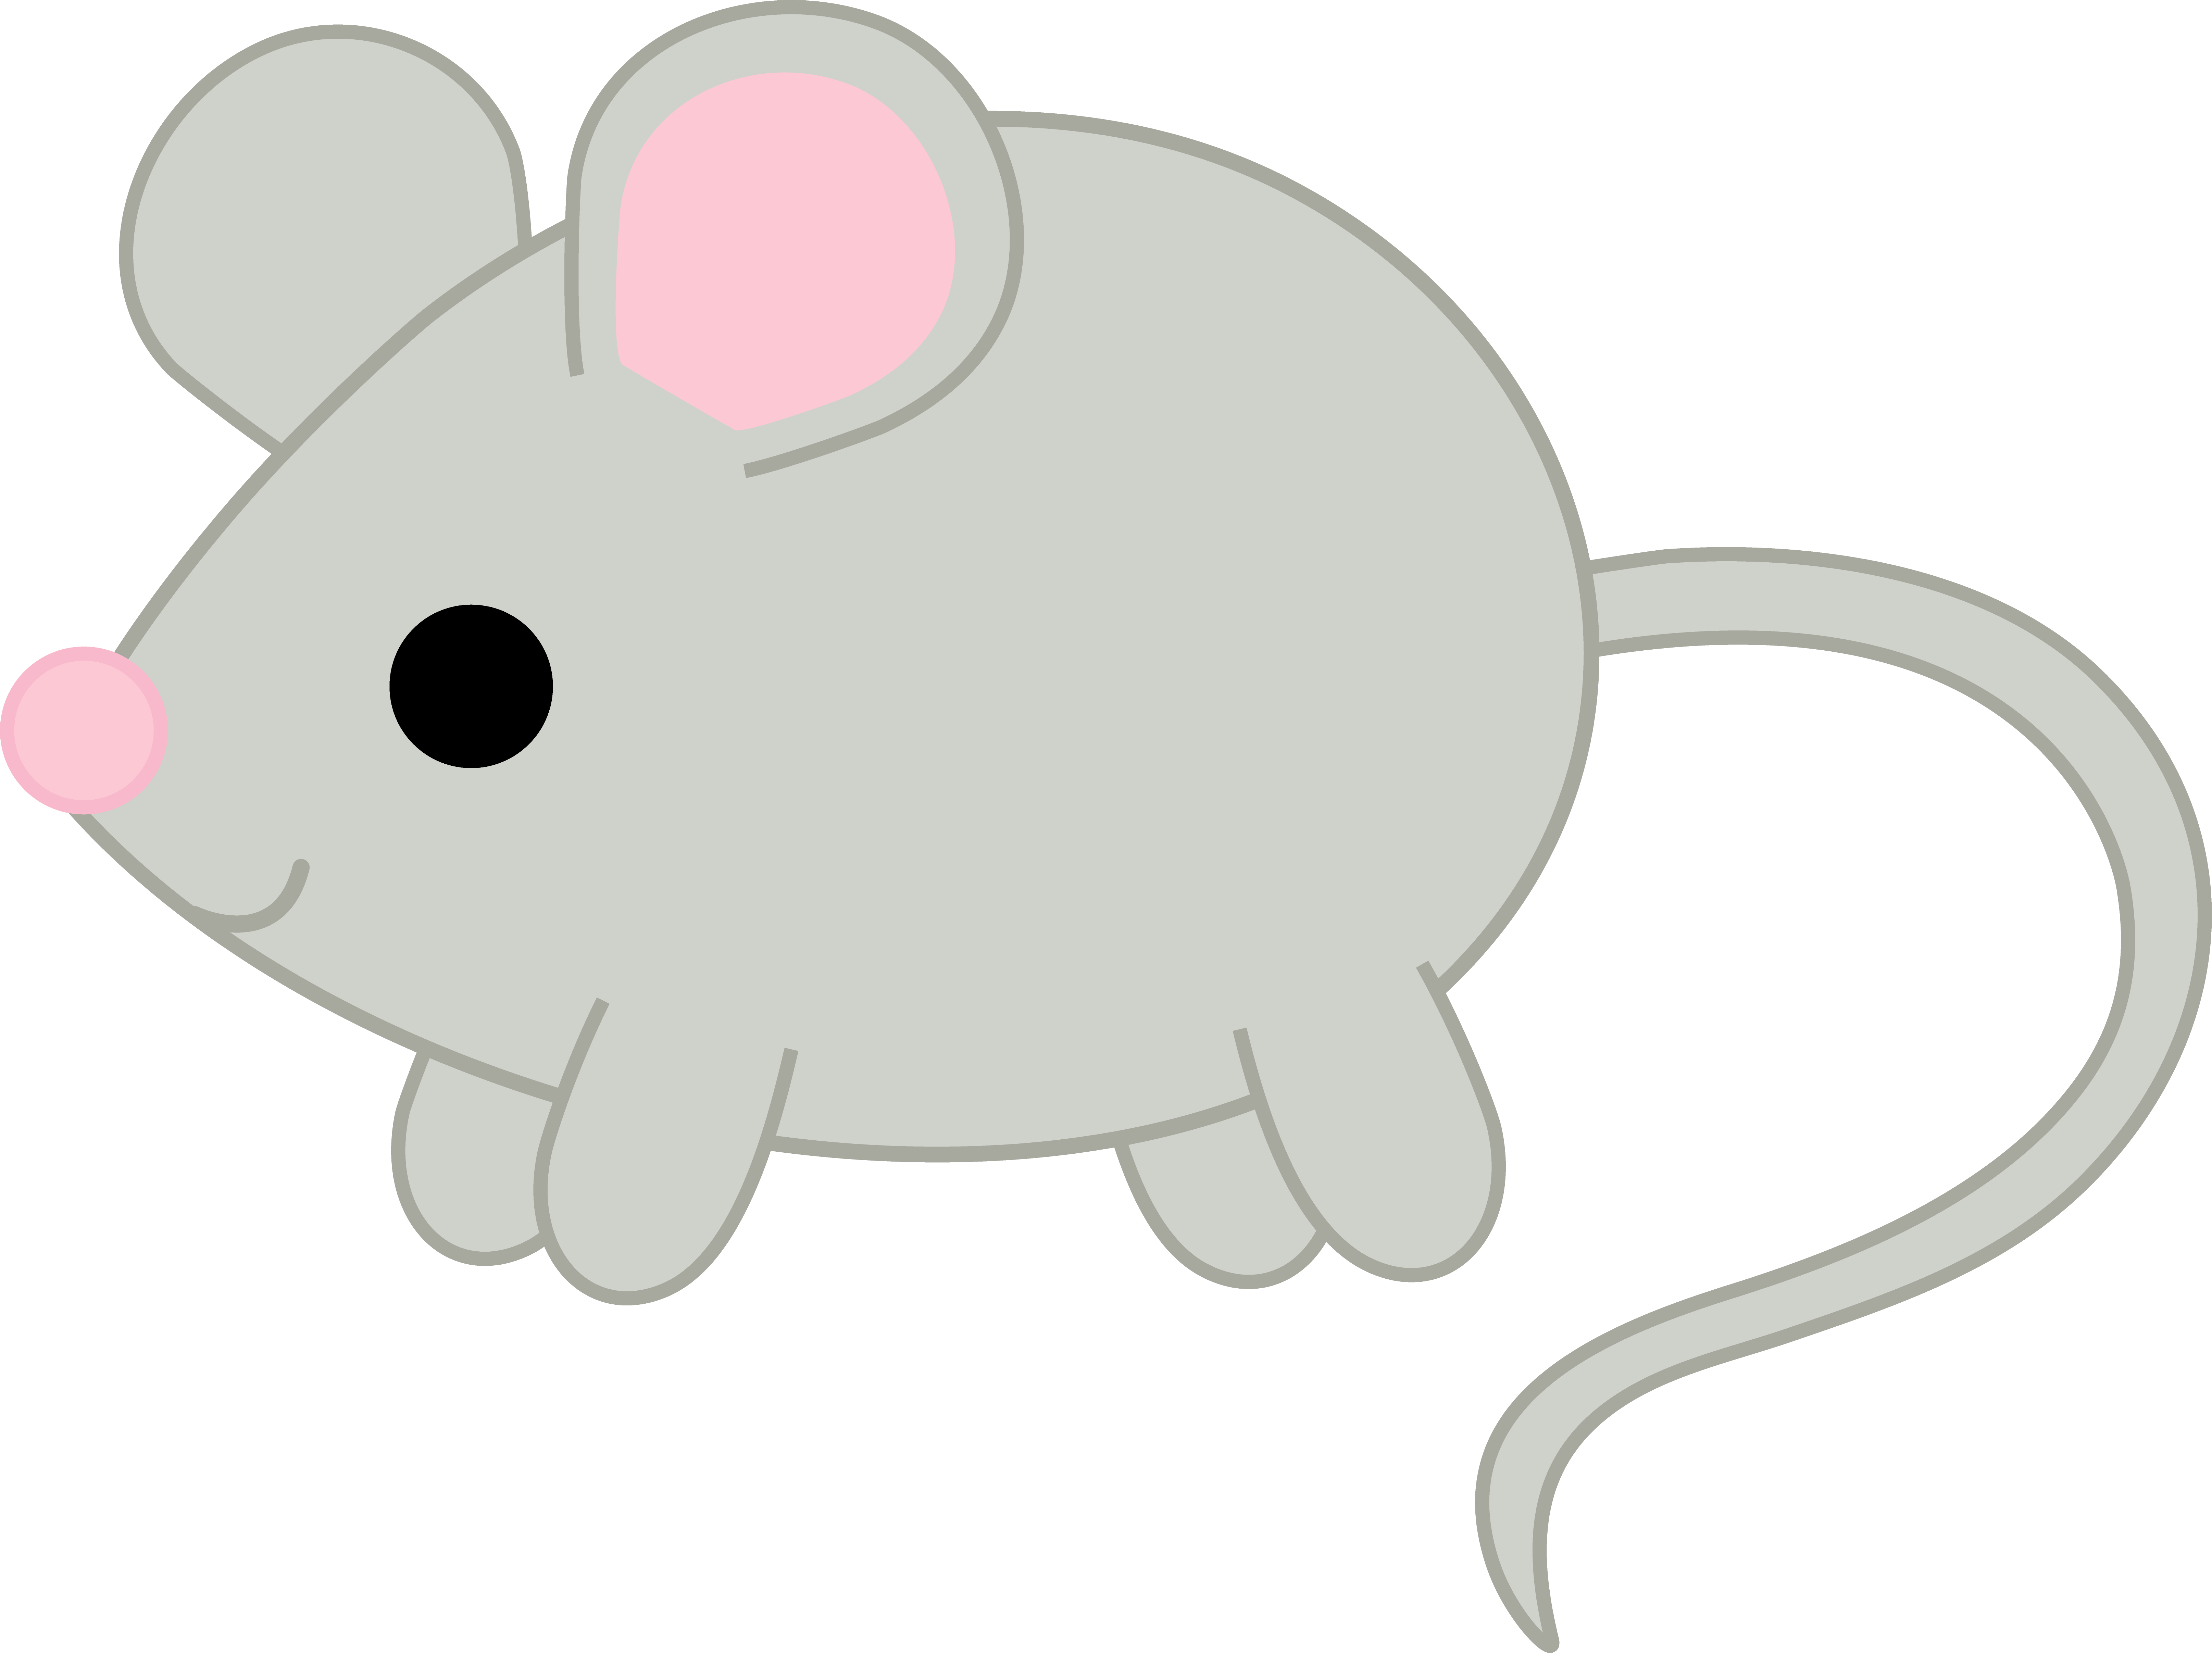 Mice clipart gray mouse. Cute free clip art